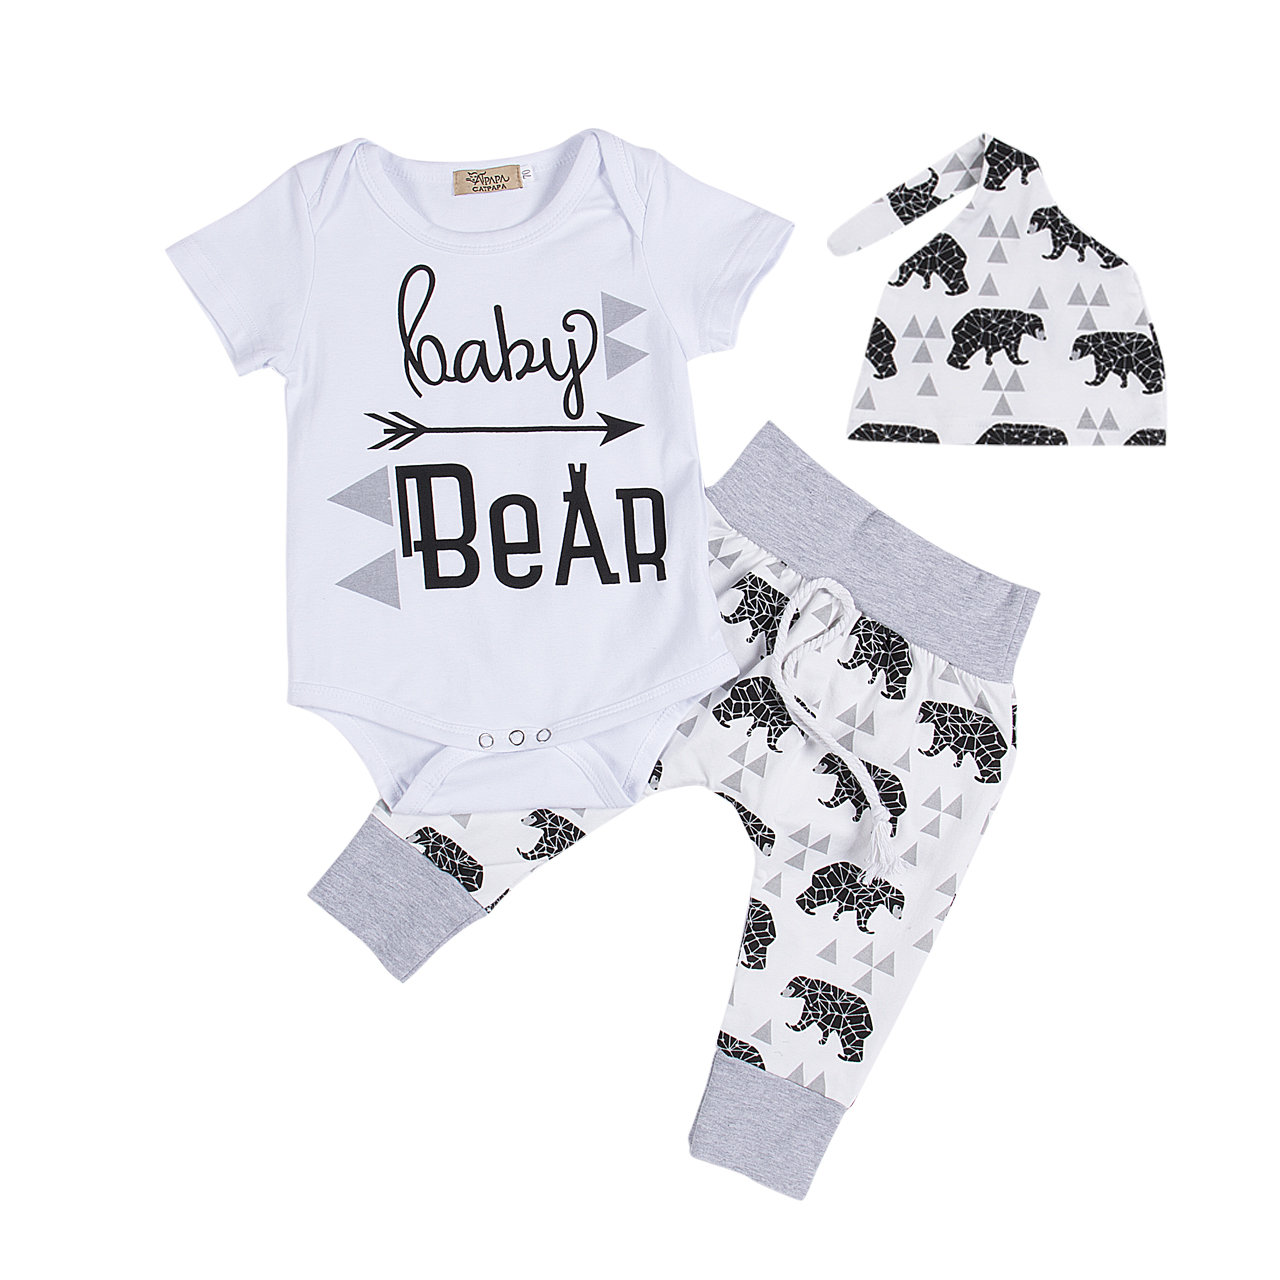 3PCS Set Newborn Infant Baby Clothes Short Sleeve Baby Bear Boys Girls Romper Pant Hat Outfit Bebek Giyim Clothing Costume pink newborn infant baby girls clothes short sleeve bodysuit striped leg warmers headband 3pcs outfit bebek clothing set 0 18m